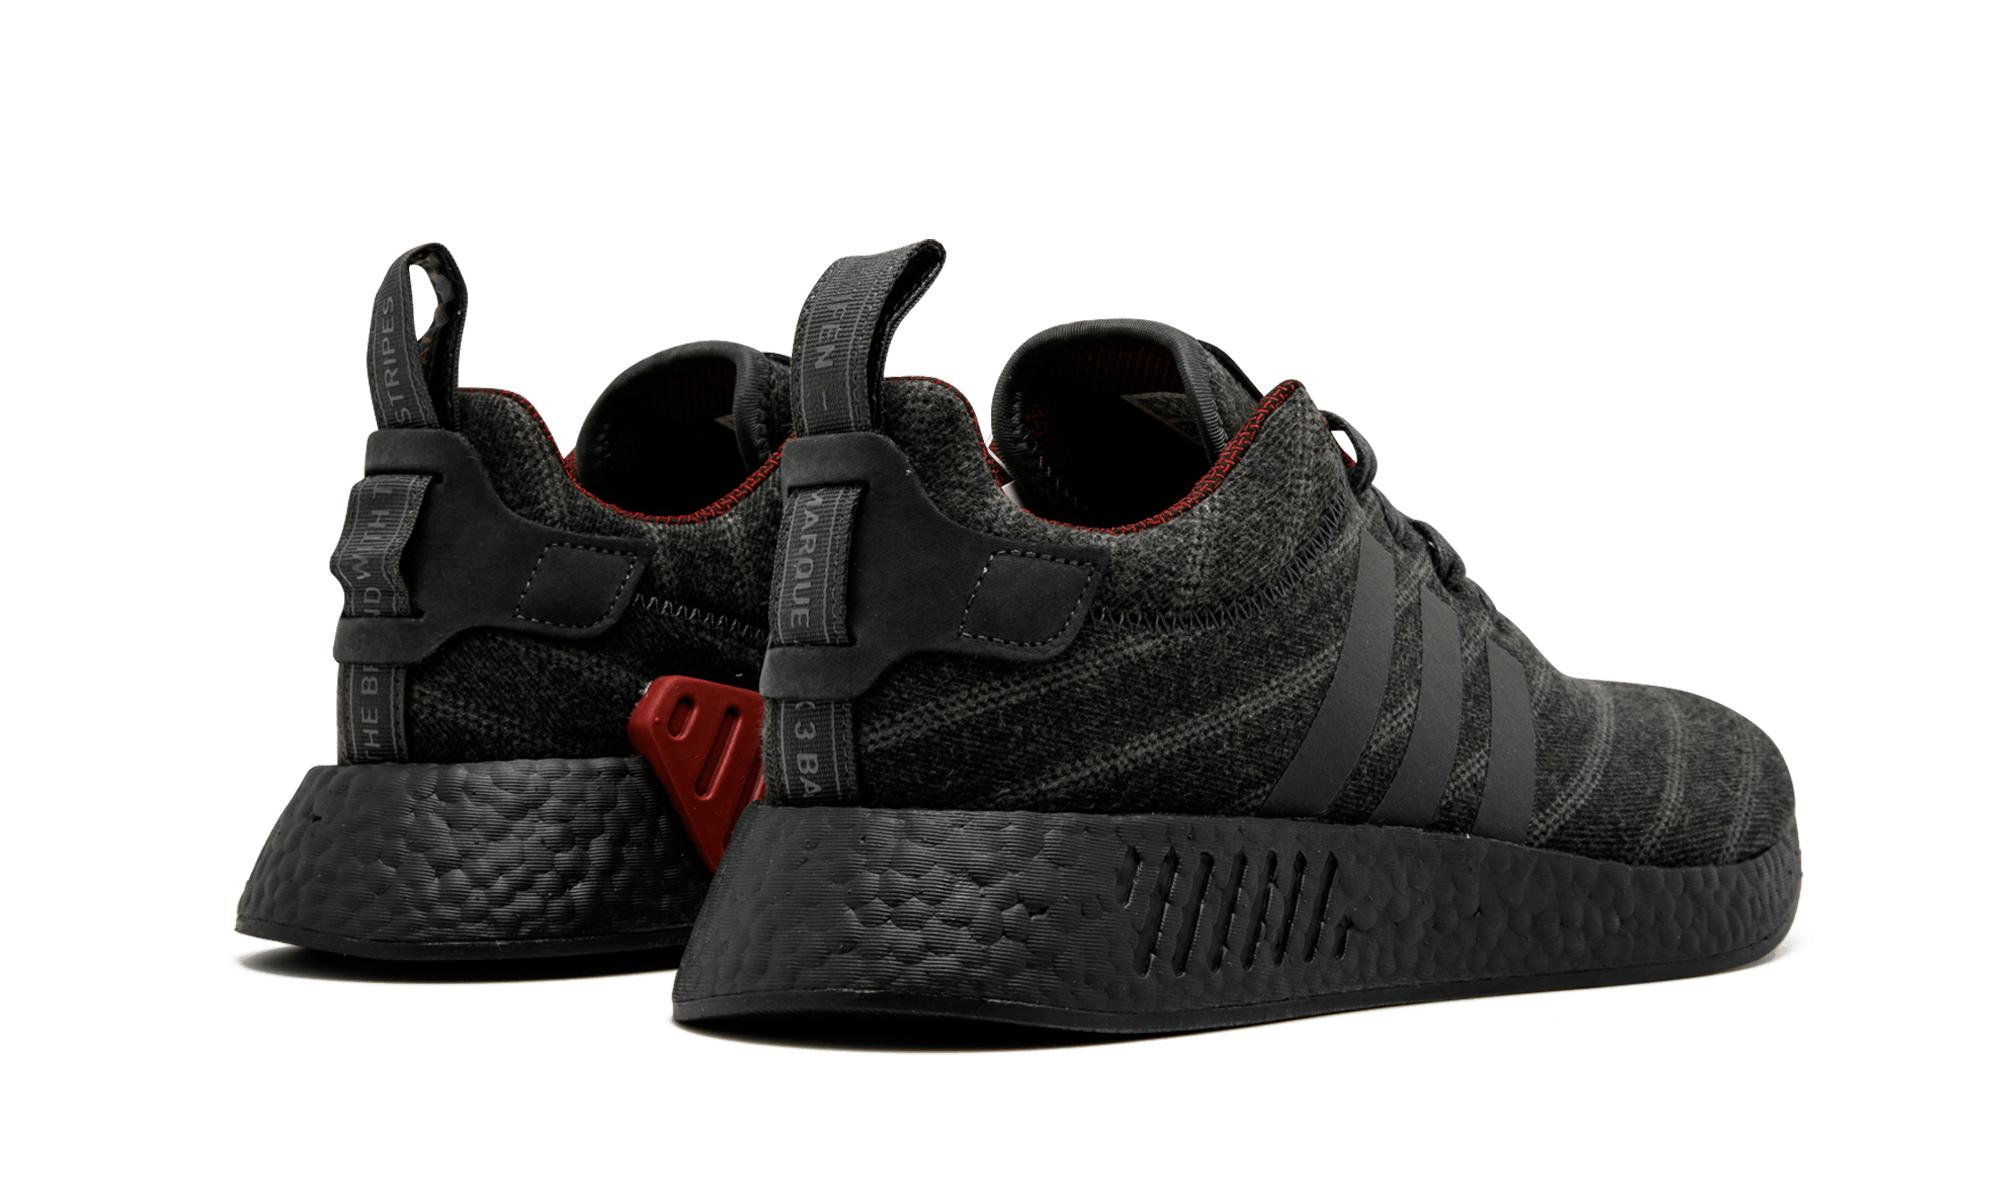 354a17f14 Adidas - Black Nmd R2 Core Grey core Red  henry Poole  for Men. View  fullscreen